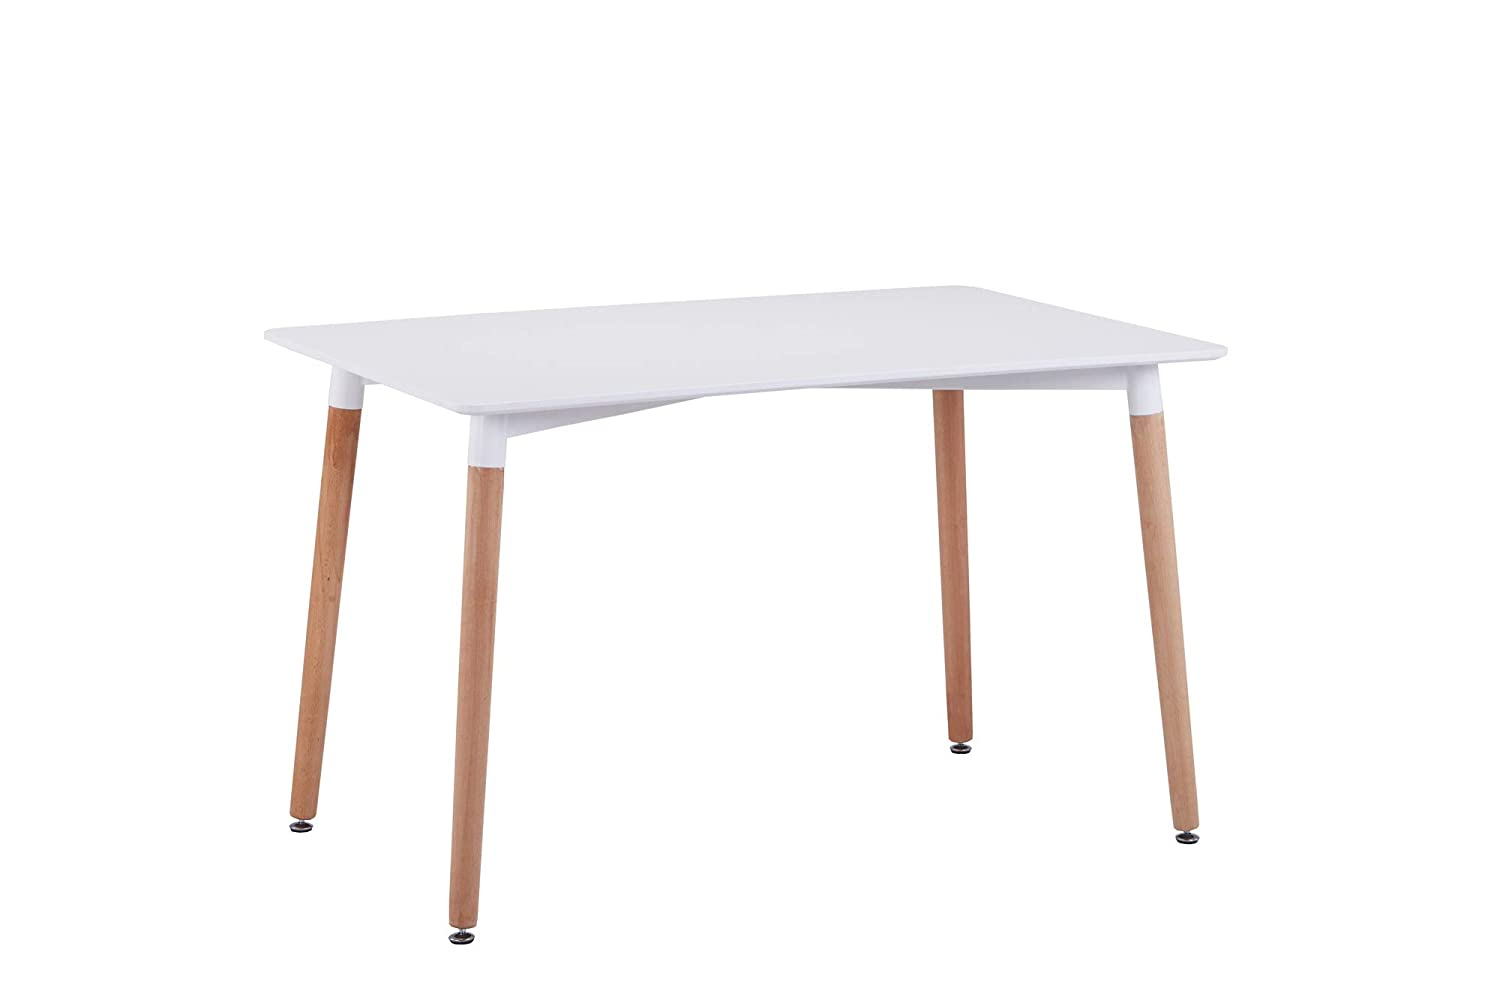 CrazyGadget Retro Design Wood Contemporary Style Table for Office Lounge Dining Kitchen - White